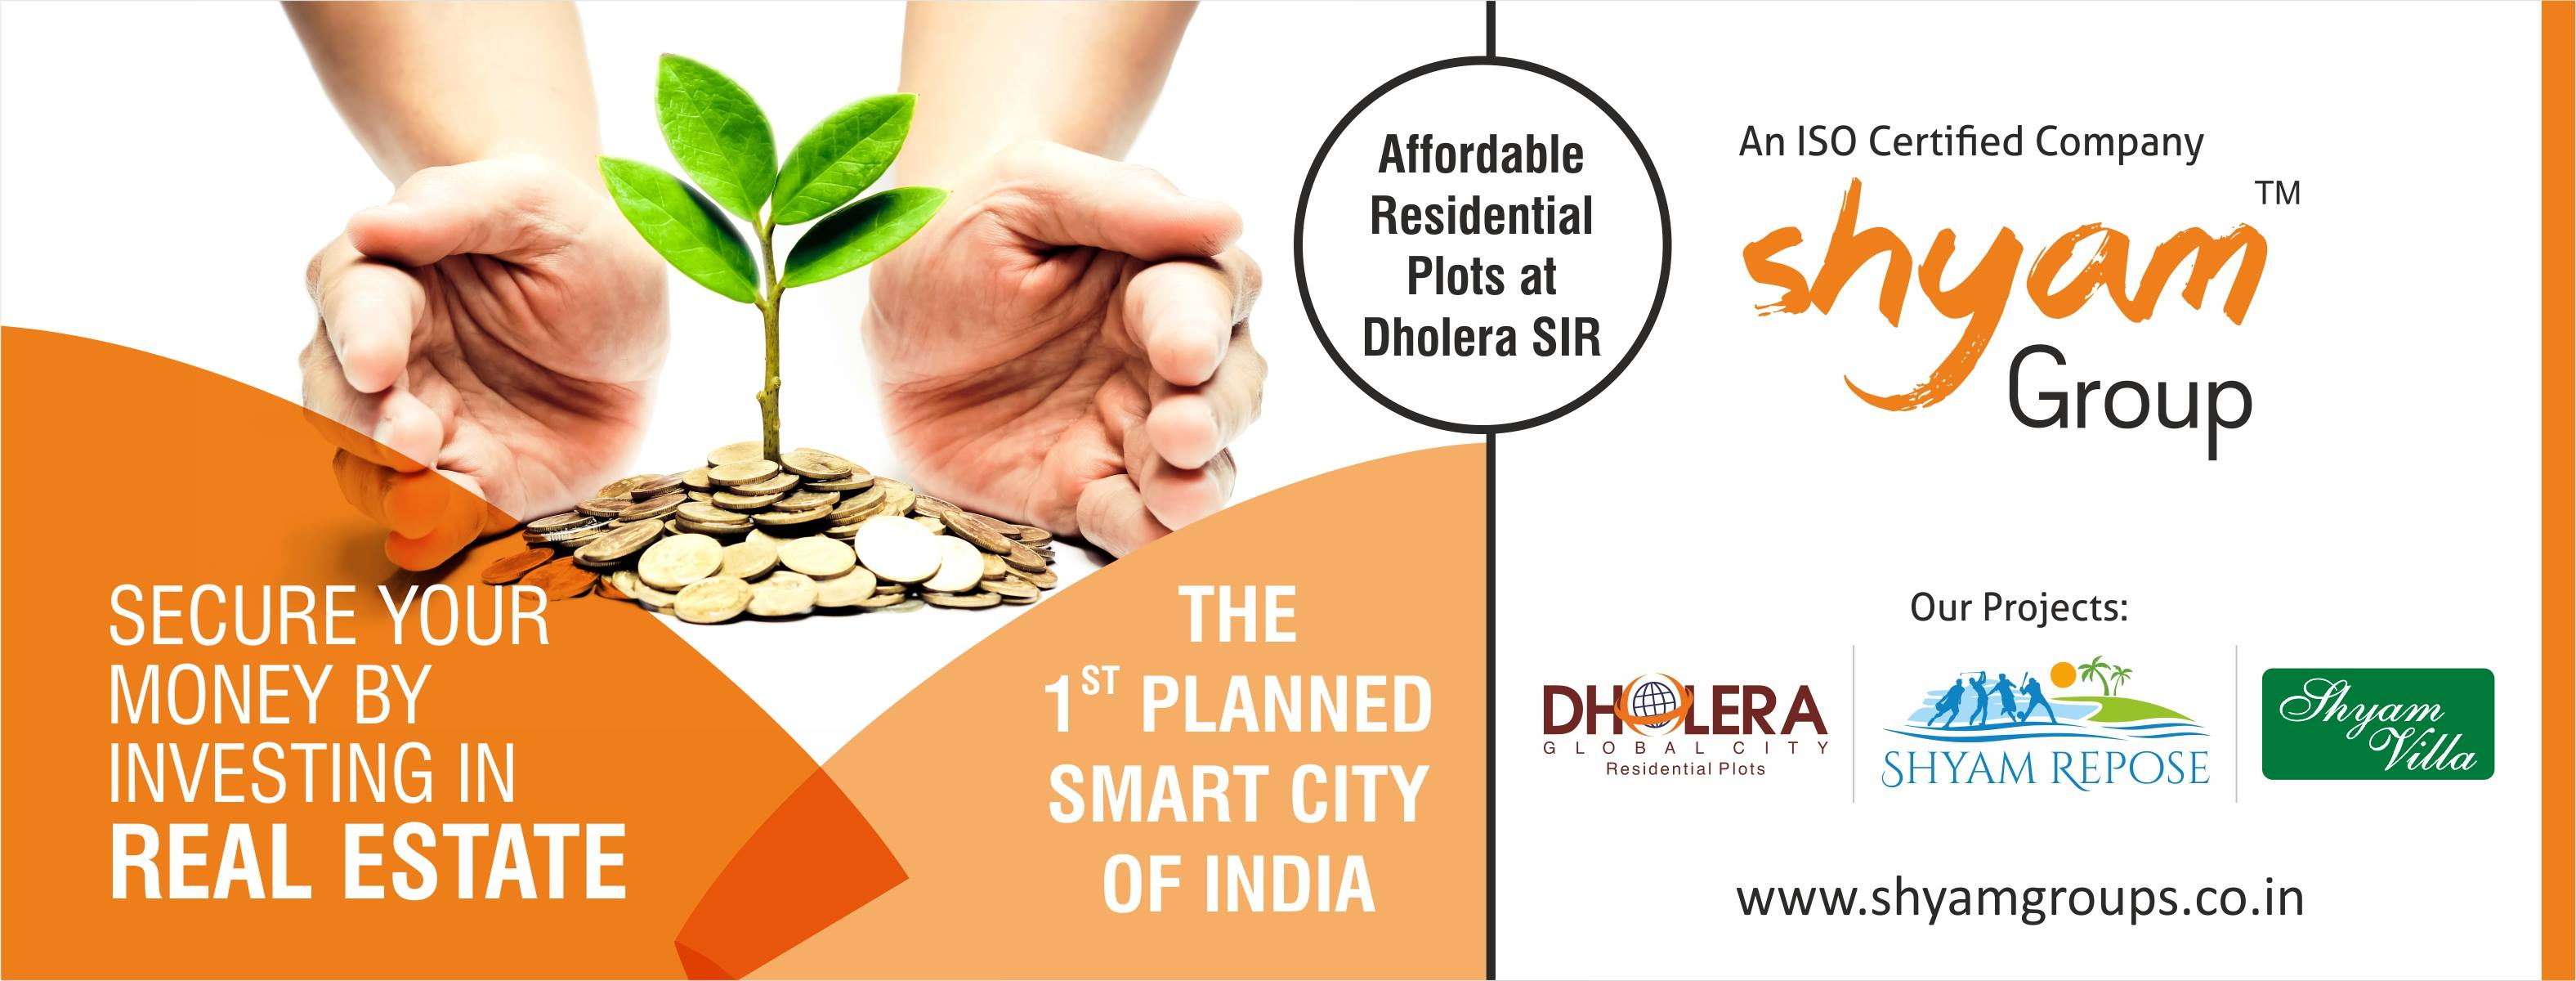 Shyam Group The Real Estate Developers at Dholera SIR